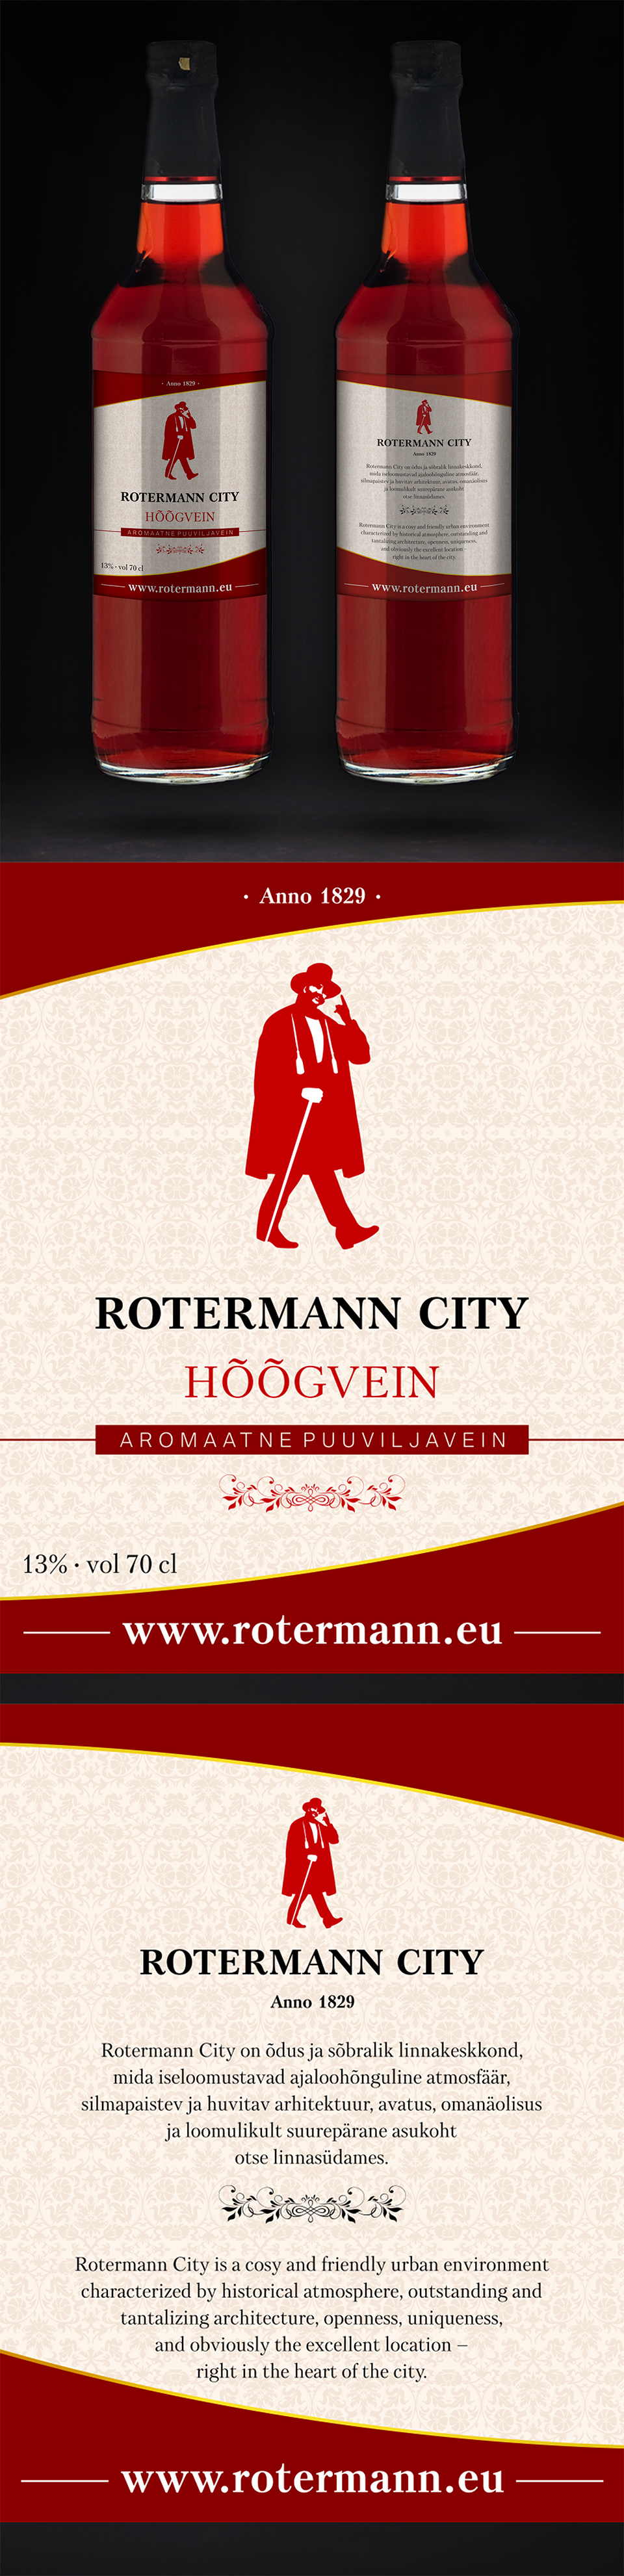 Rotermann-Hoogvein-Package